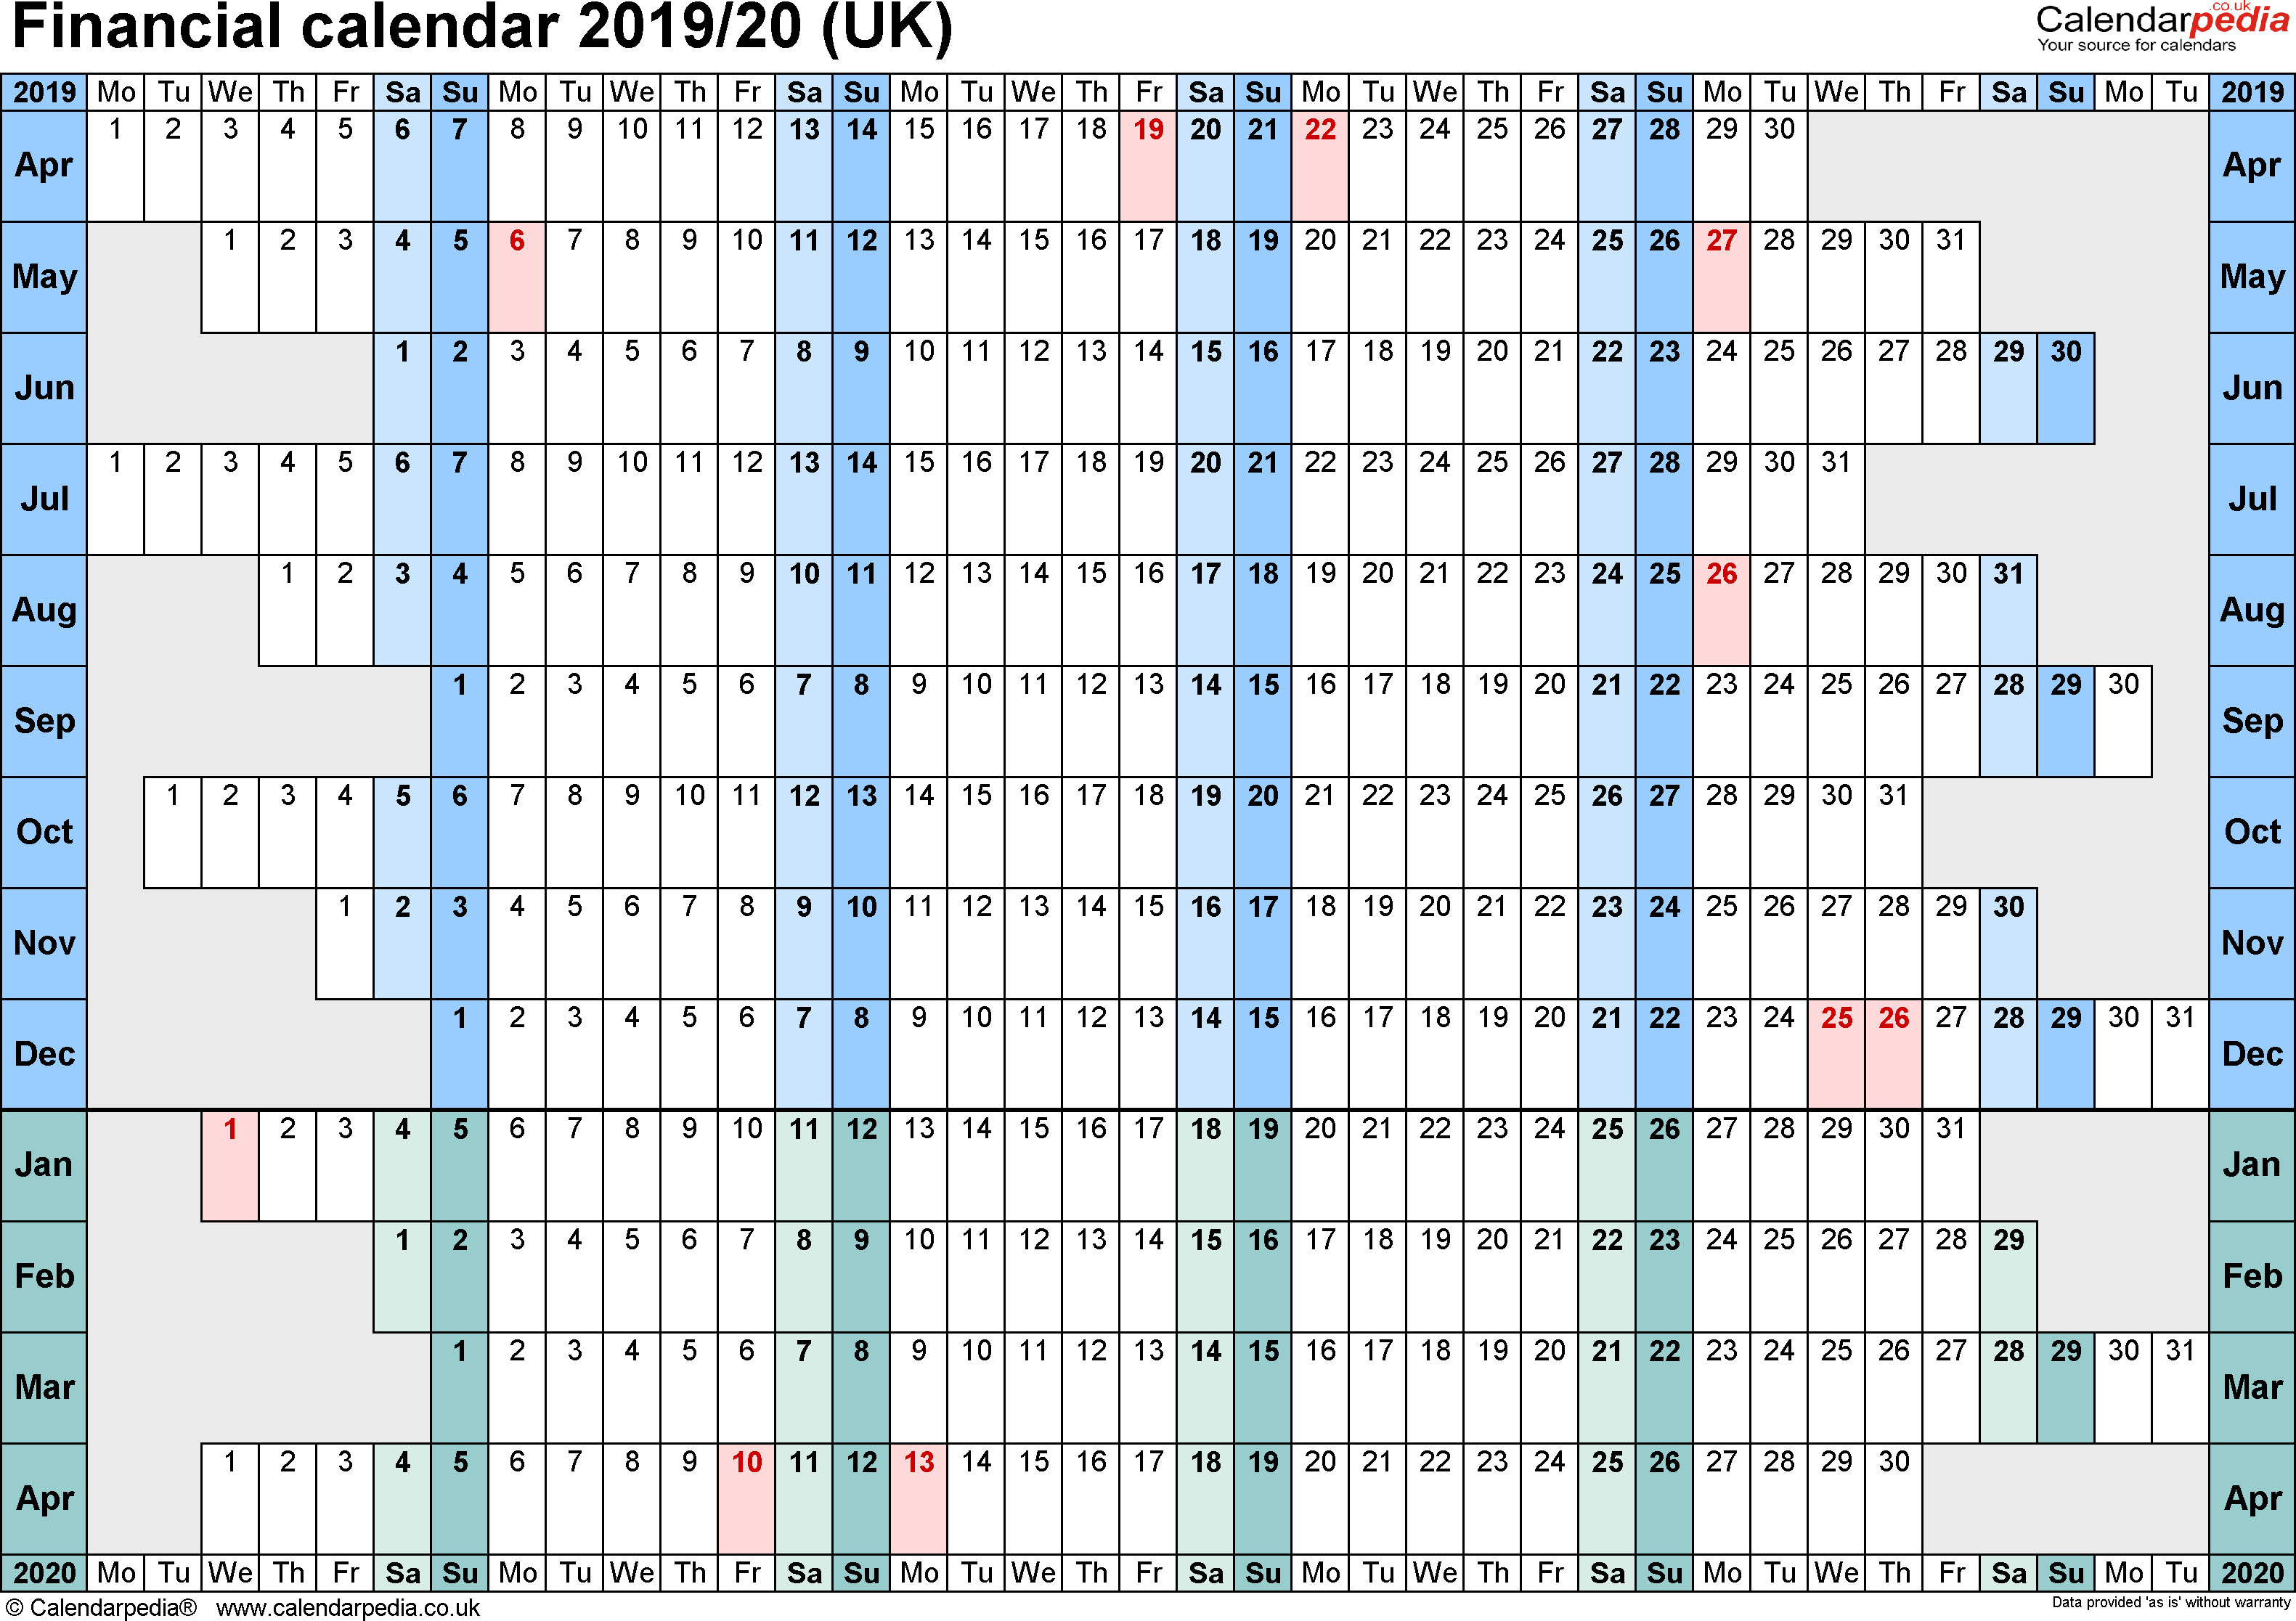 Fiscal Year Calendar 2019 Quarters With Financial Calendars 20 UK In PDF Format